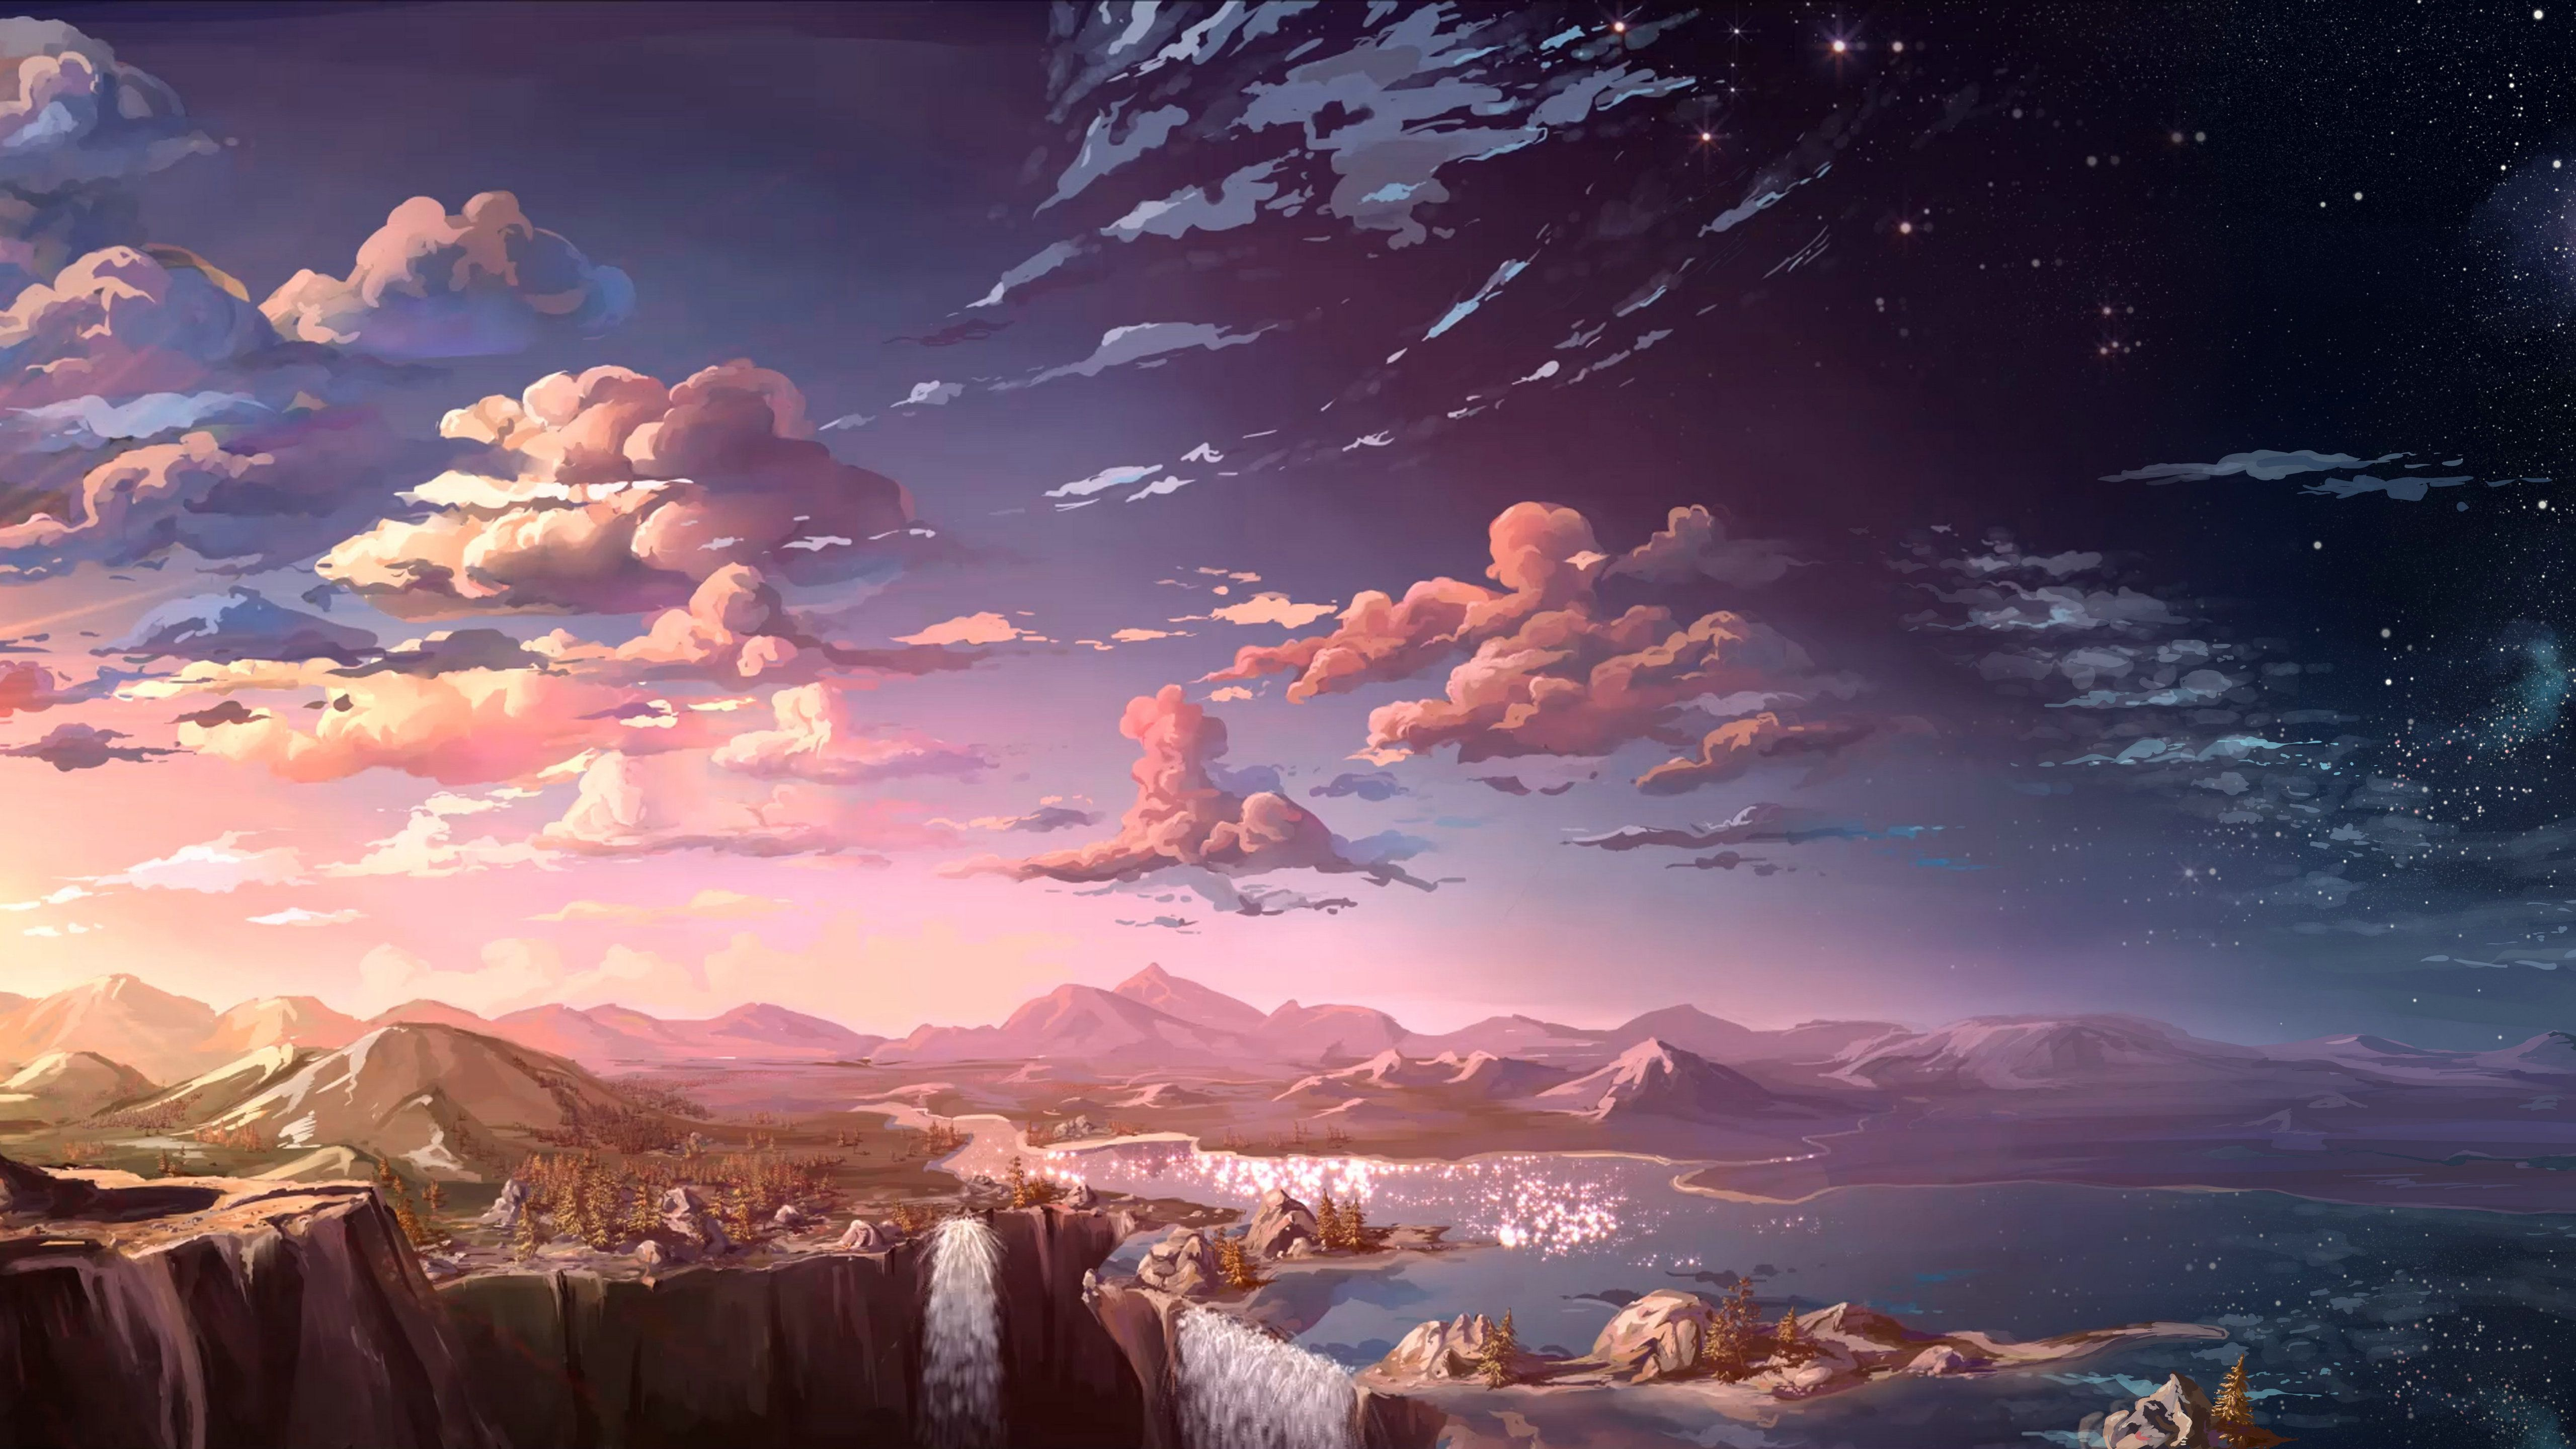 Anime Scenery Wallpapers Top Free Anime Scenery